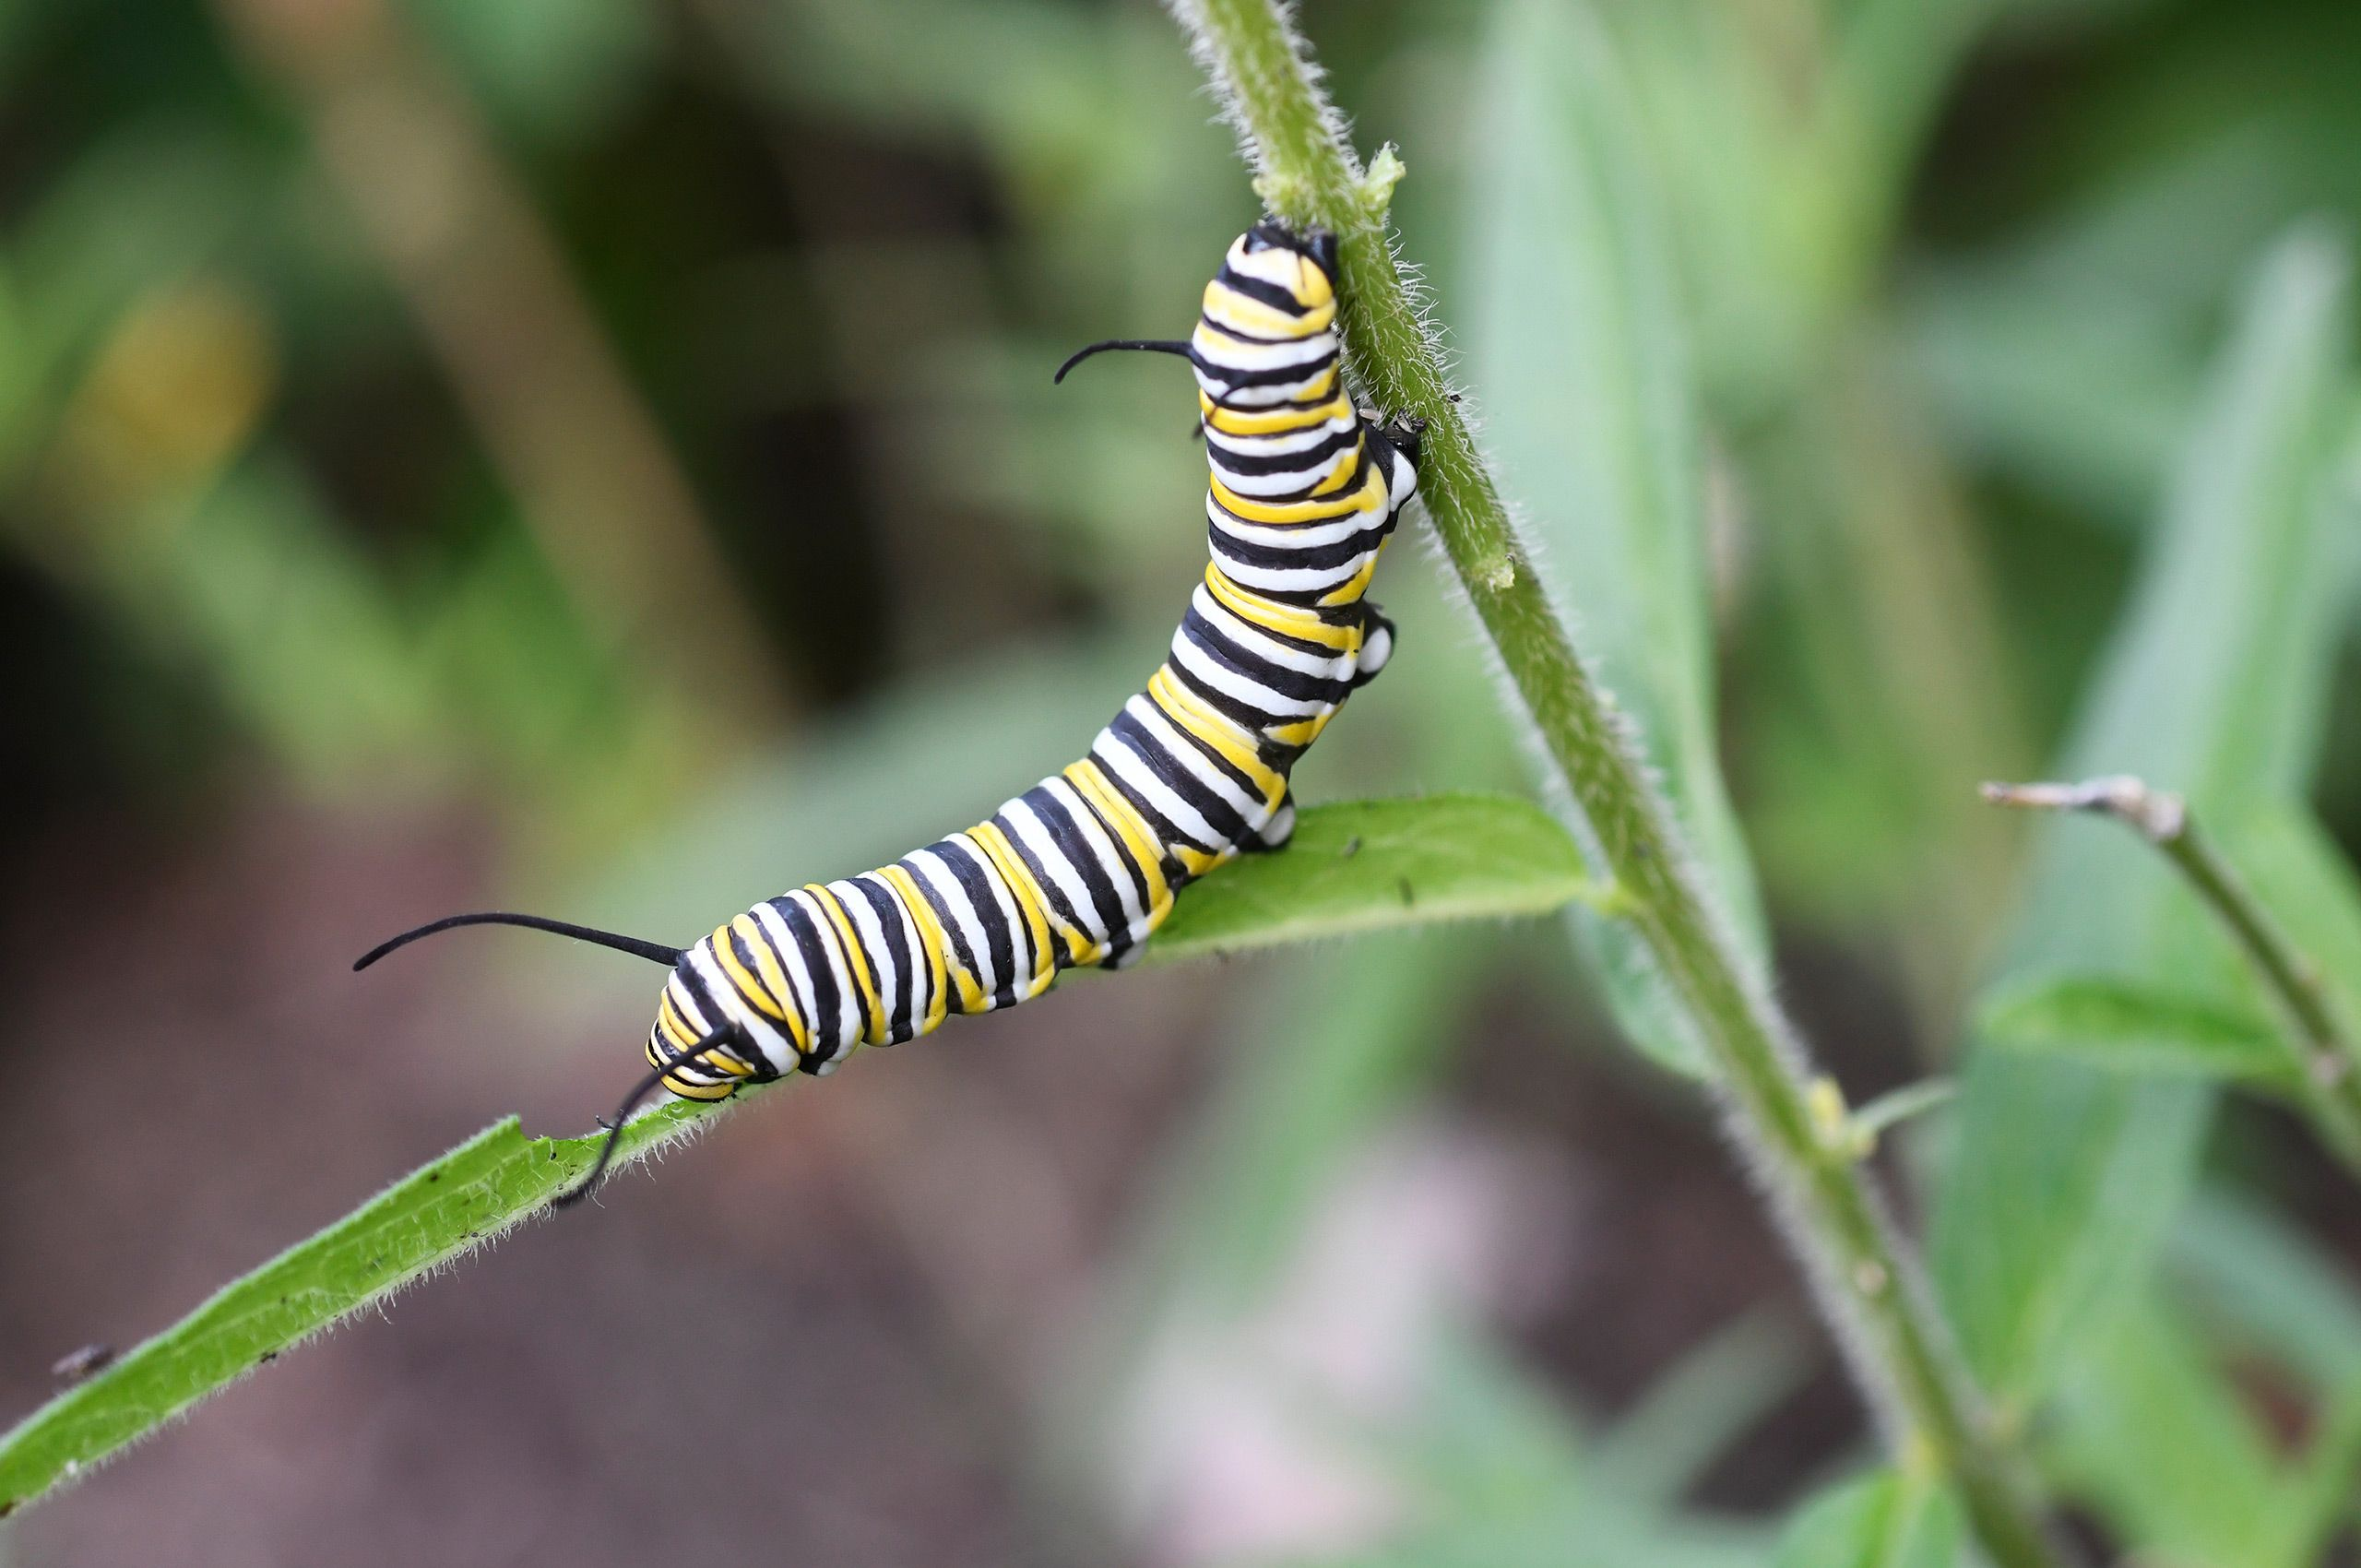 D-17-08-25-1717-(GF-Monarch-caterpillar).jpg